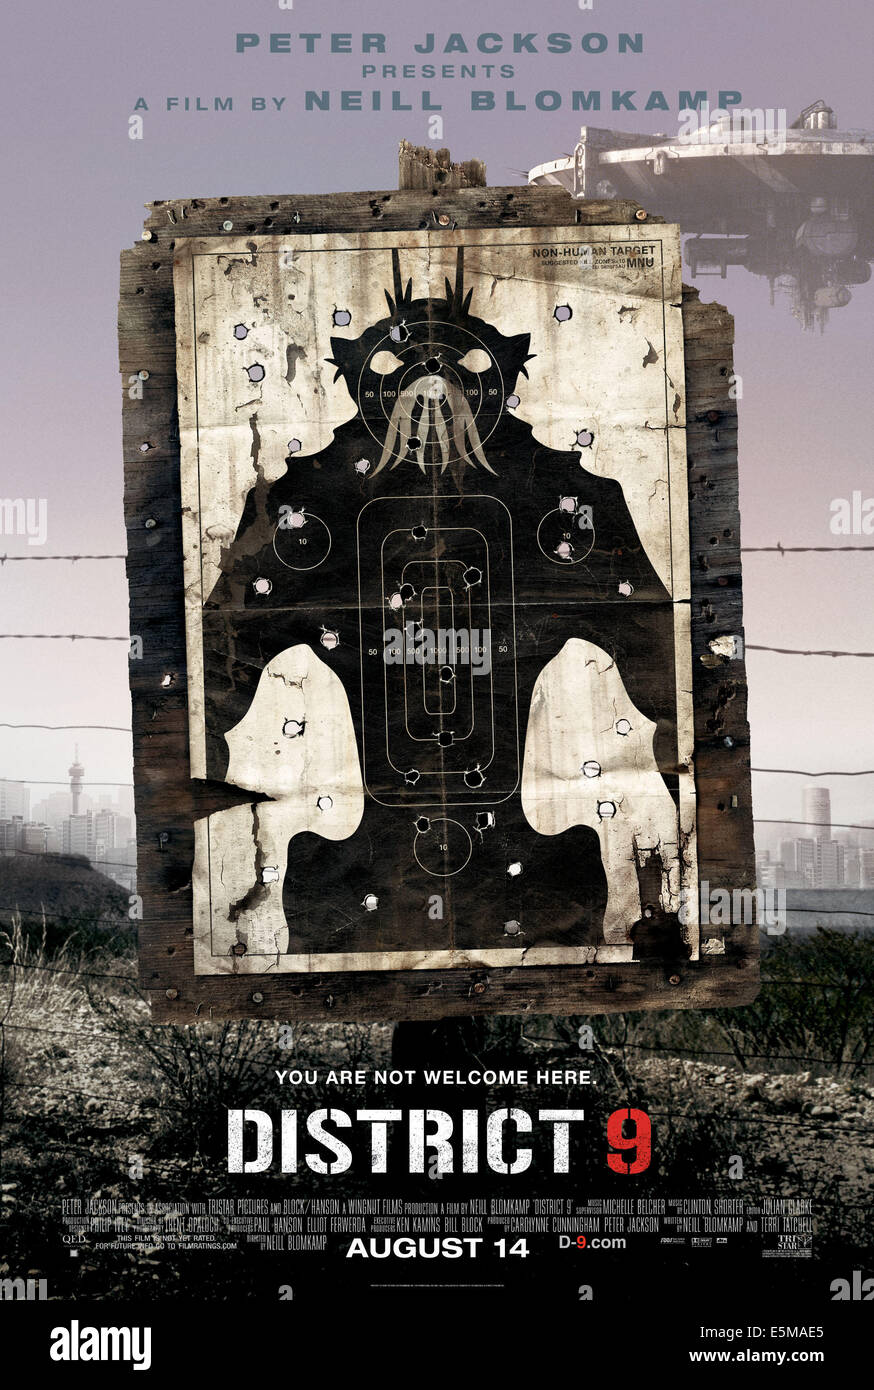 DISTRICT 9, 2009. ©Sony Pictures Entertainment/Courtesy Everett Collection - Stock Image